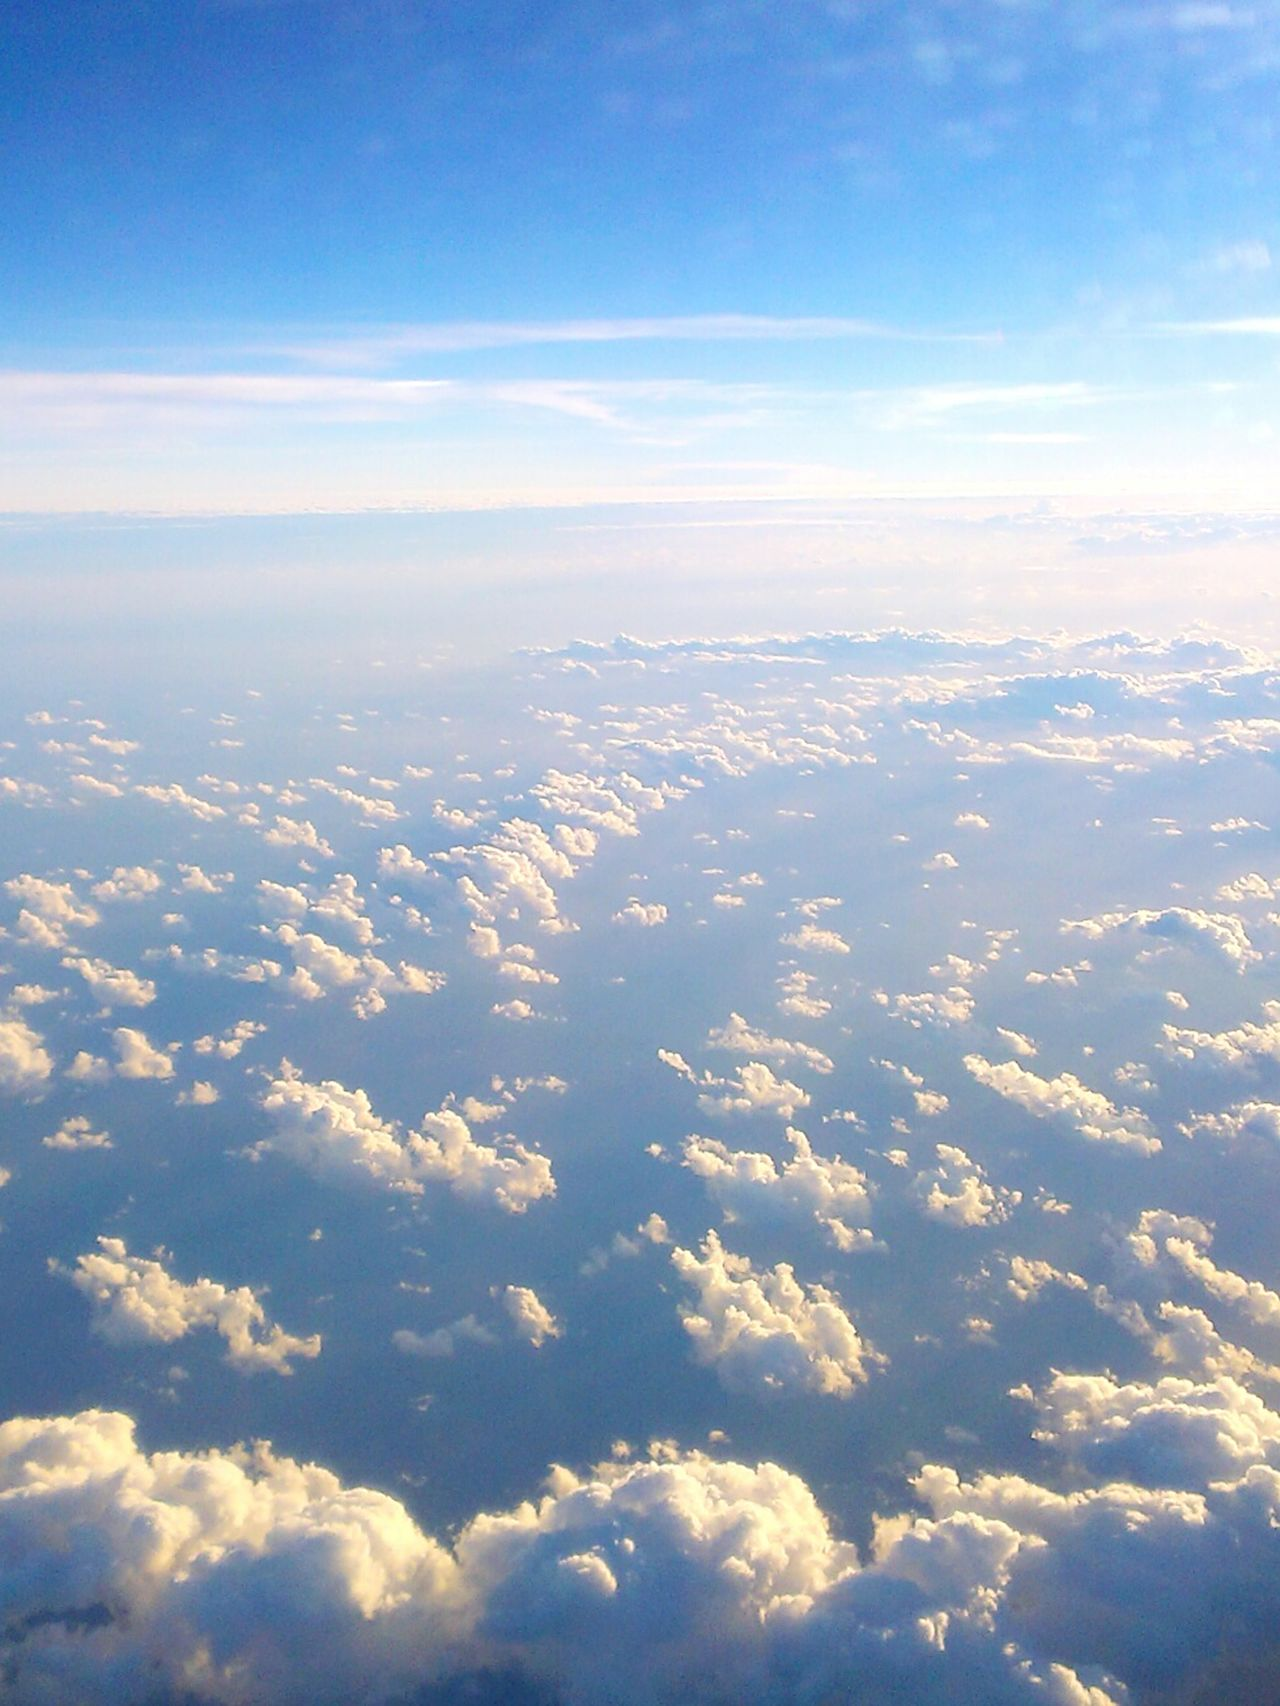 Day Scenics Tranquility Sunlight Cloudscape Cloud - Sky Sky Aerial View No People Clouds And Sky Clouds Mobile Photography